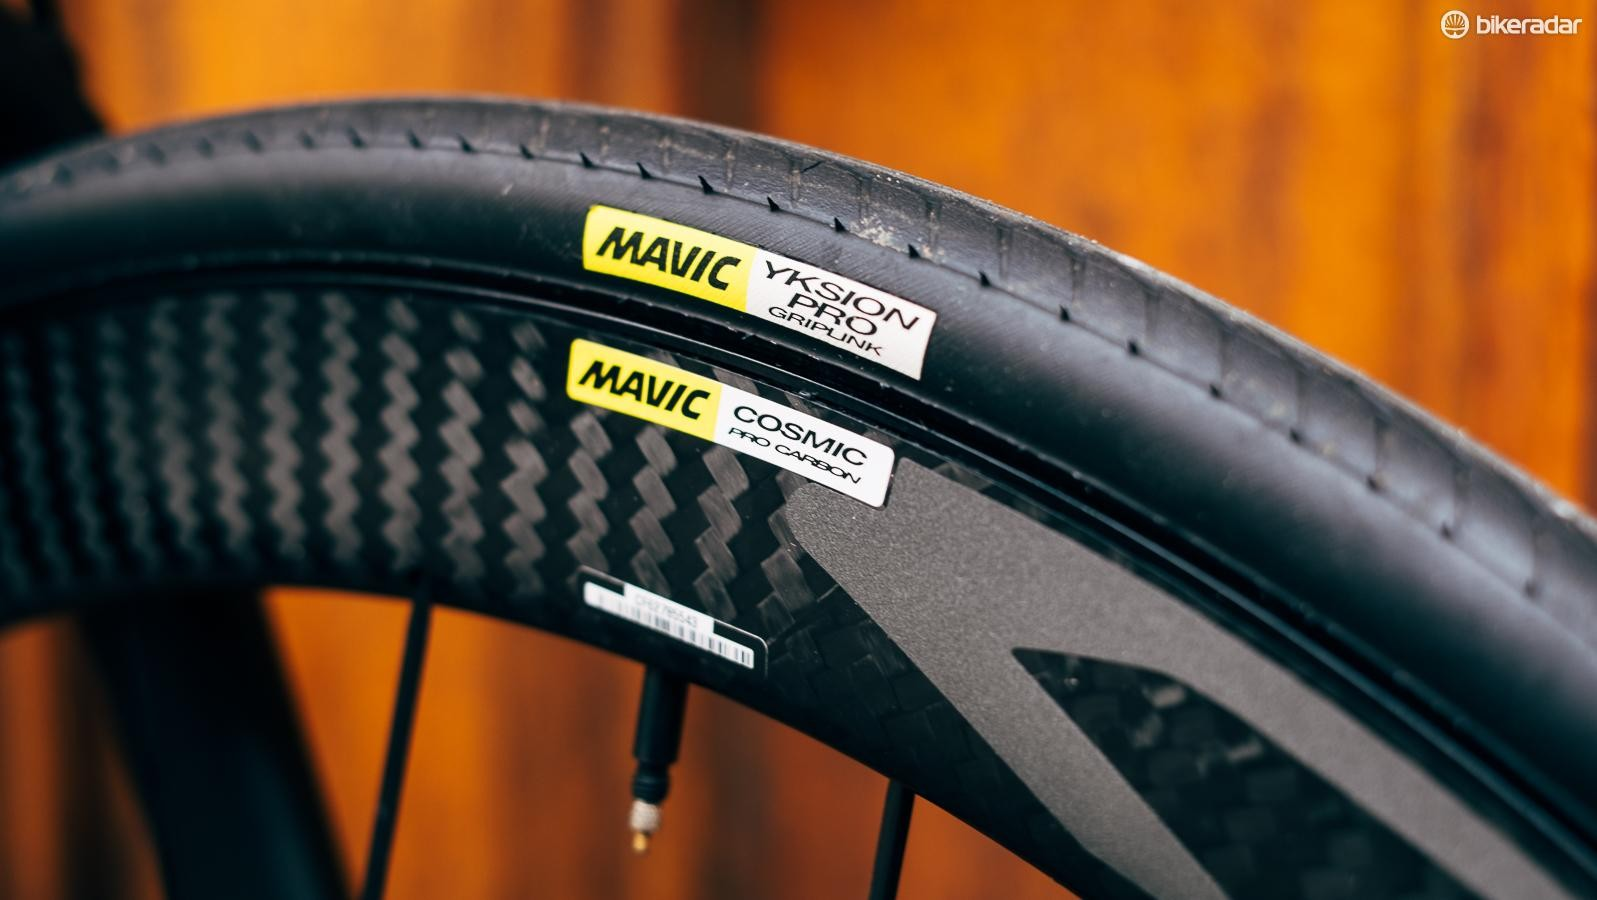 The Ultimate arrives with Mavic's deep section Cosmic Pro Carbon wheels which use a carbon construction over aluminium rims